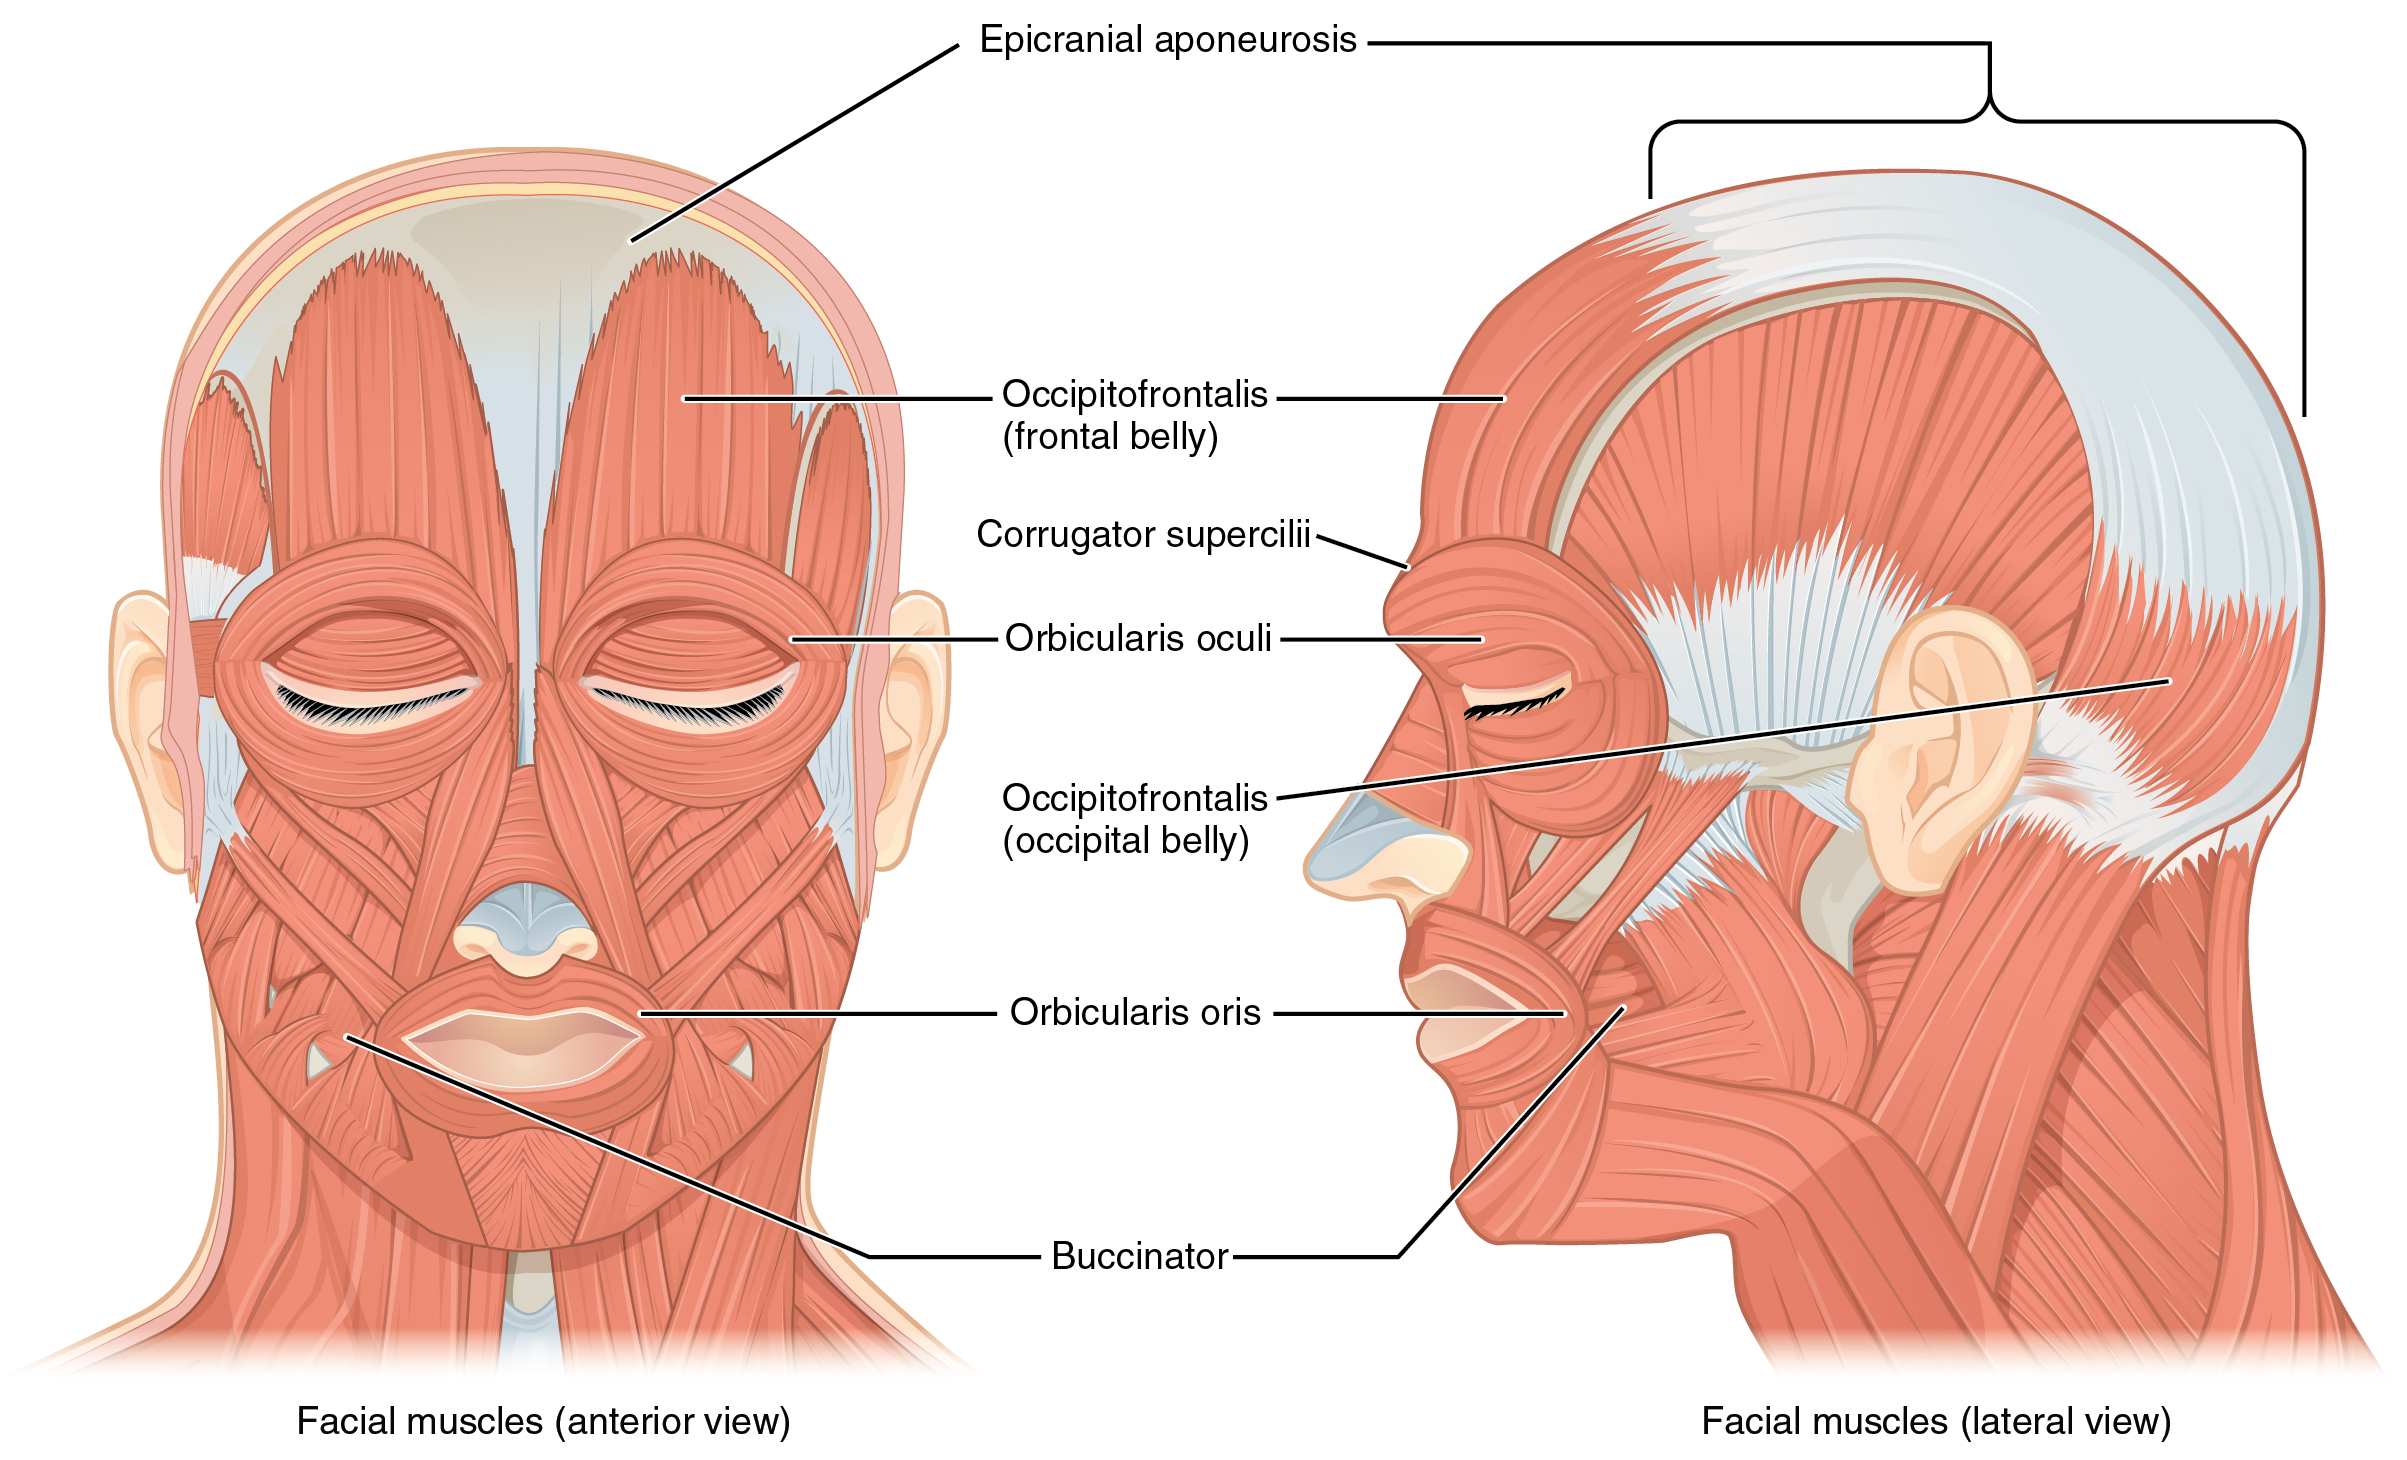 113 Axial Muscles Of The Head Neck And Back Anatomy Physiology Swallow Wiring Diagram Left Panel In This Figure Shows Anterior View Facial